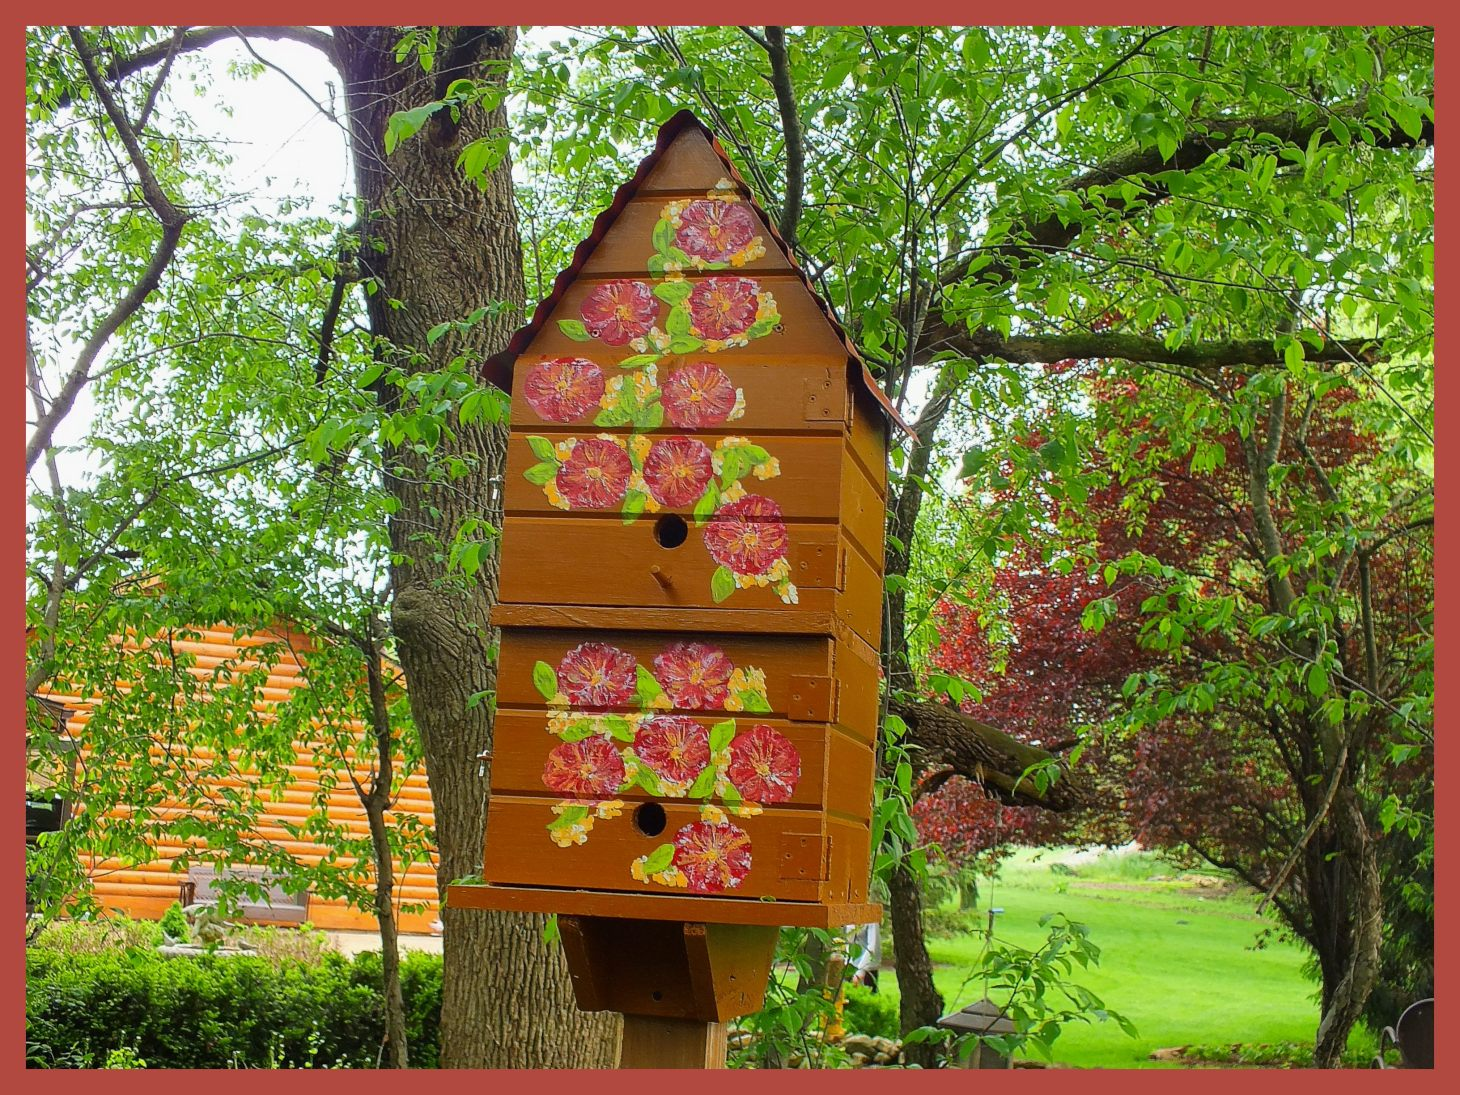 Birdhouse (3... At sister-in-law Mary's place). Photo by Thomas Peace c. 2015